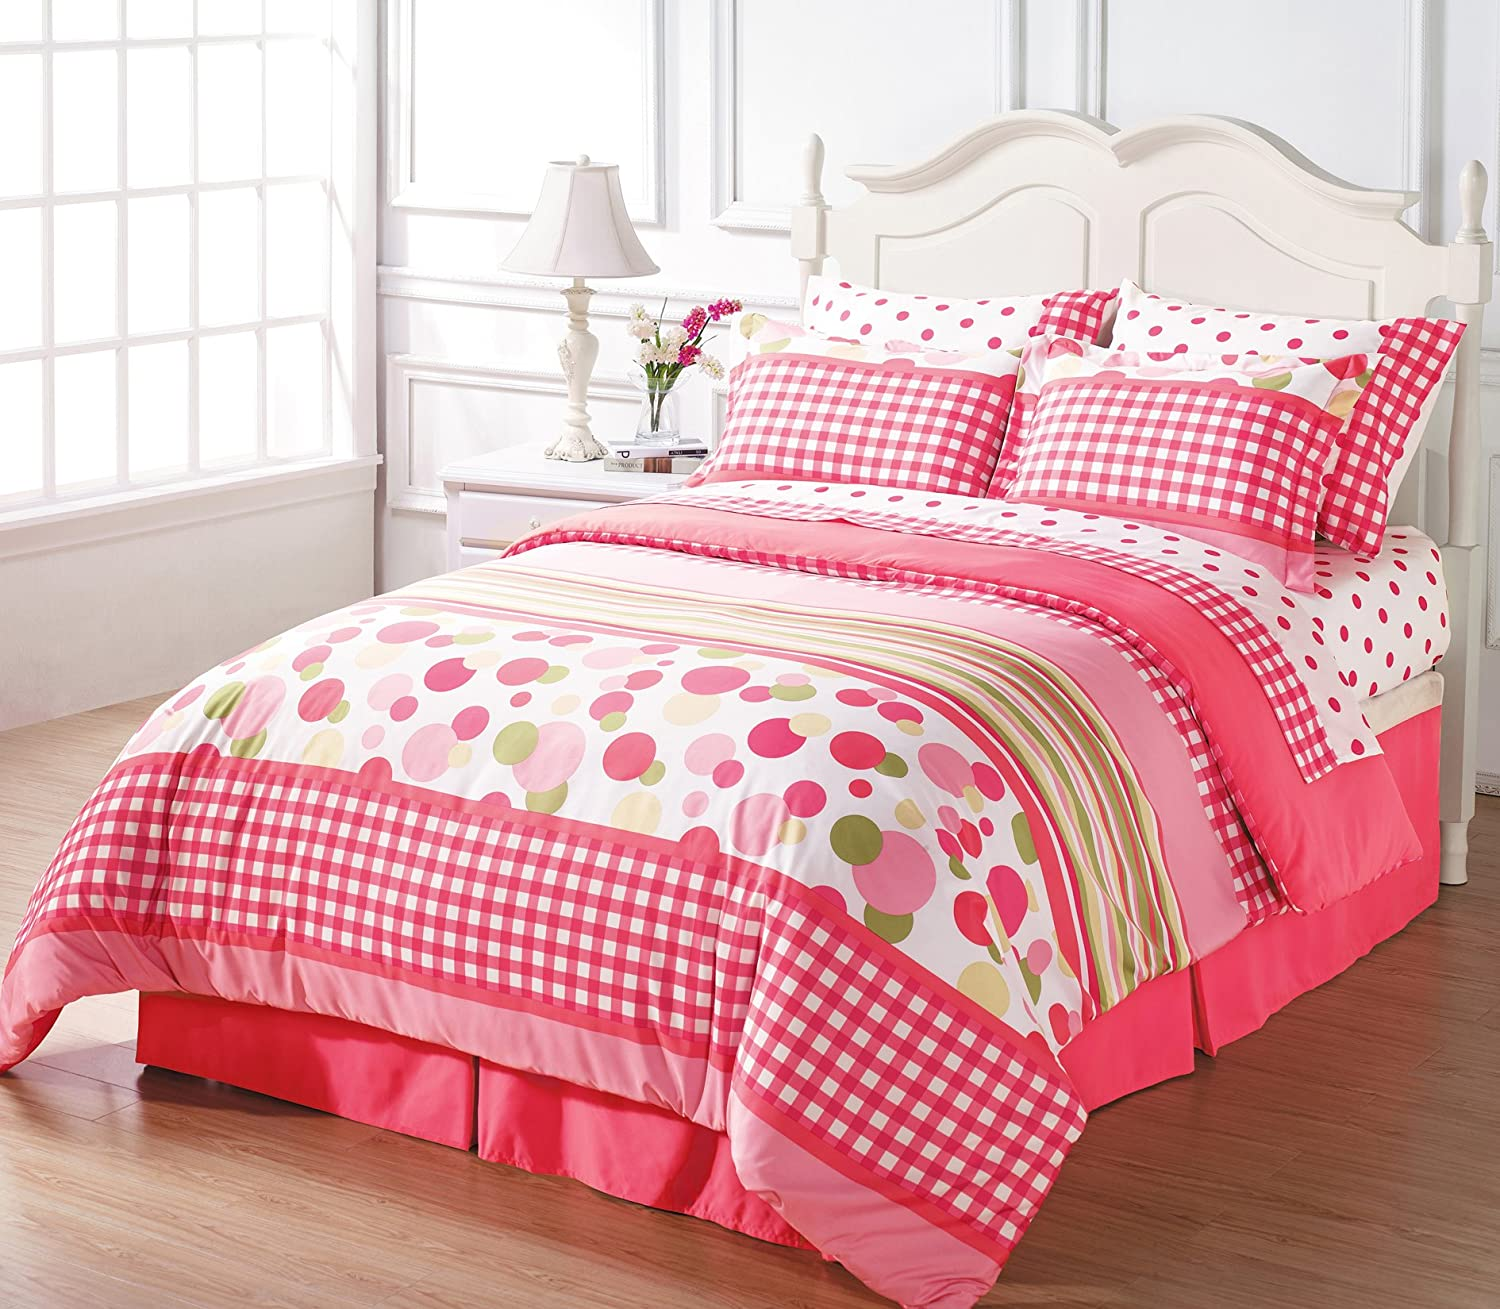 Chezmoi Collection 8-piece Soft Pink White Green Polka Dot Plaid Duvet Cover with Sheet Set Queen